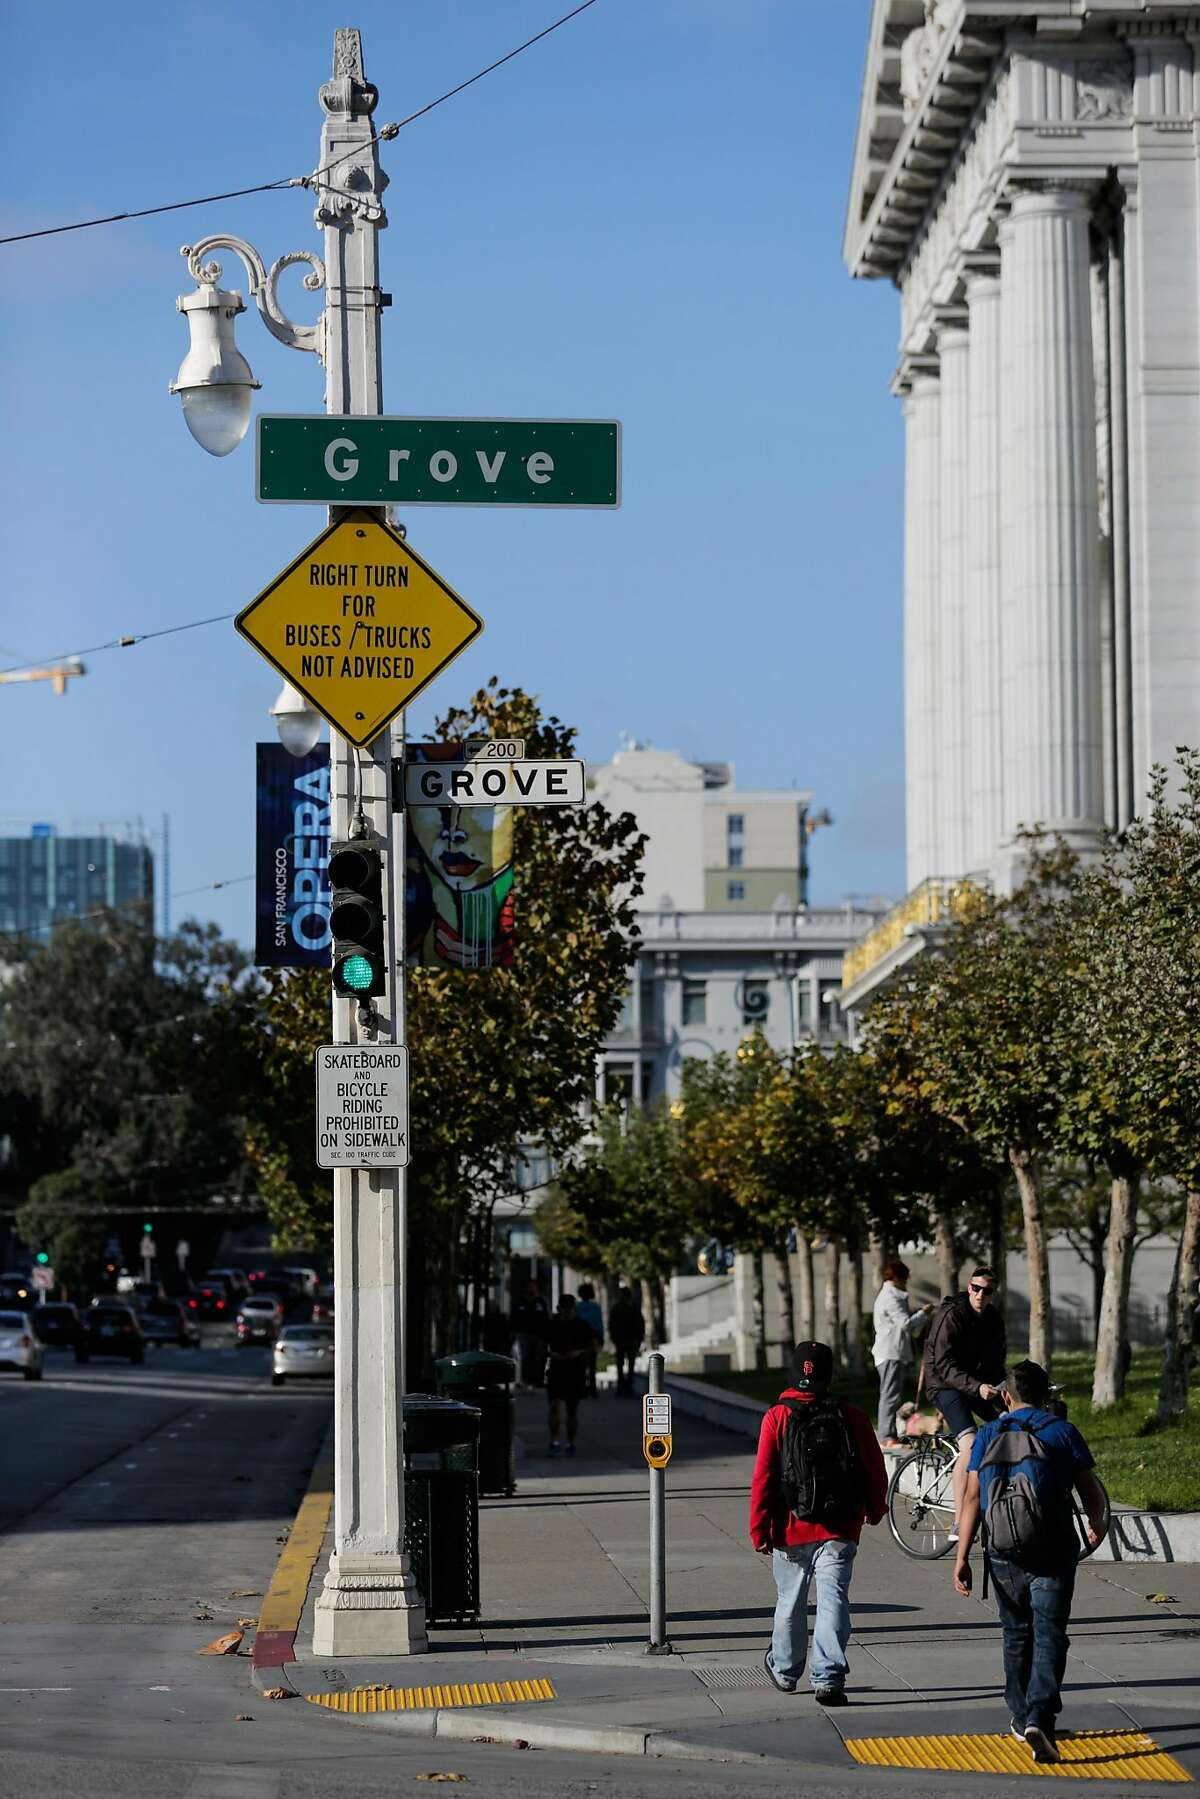 A historic street lamp is seen on Van Ness Avenue and Grove Street in San Francisco, California, on Monday, Oct. 10, 2016.